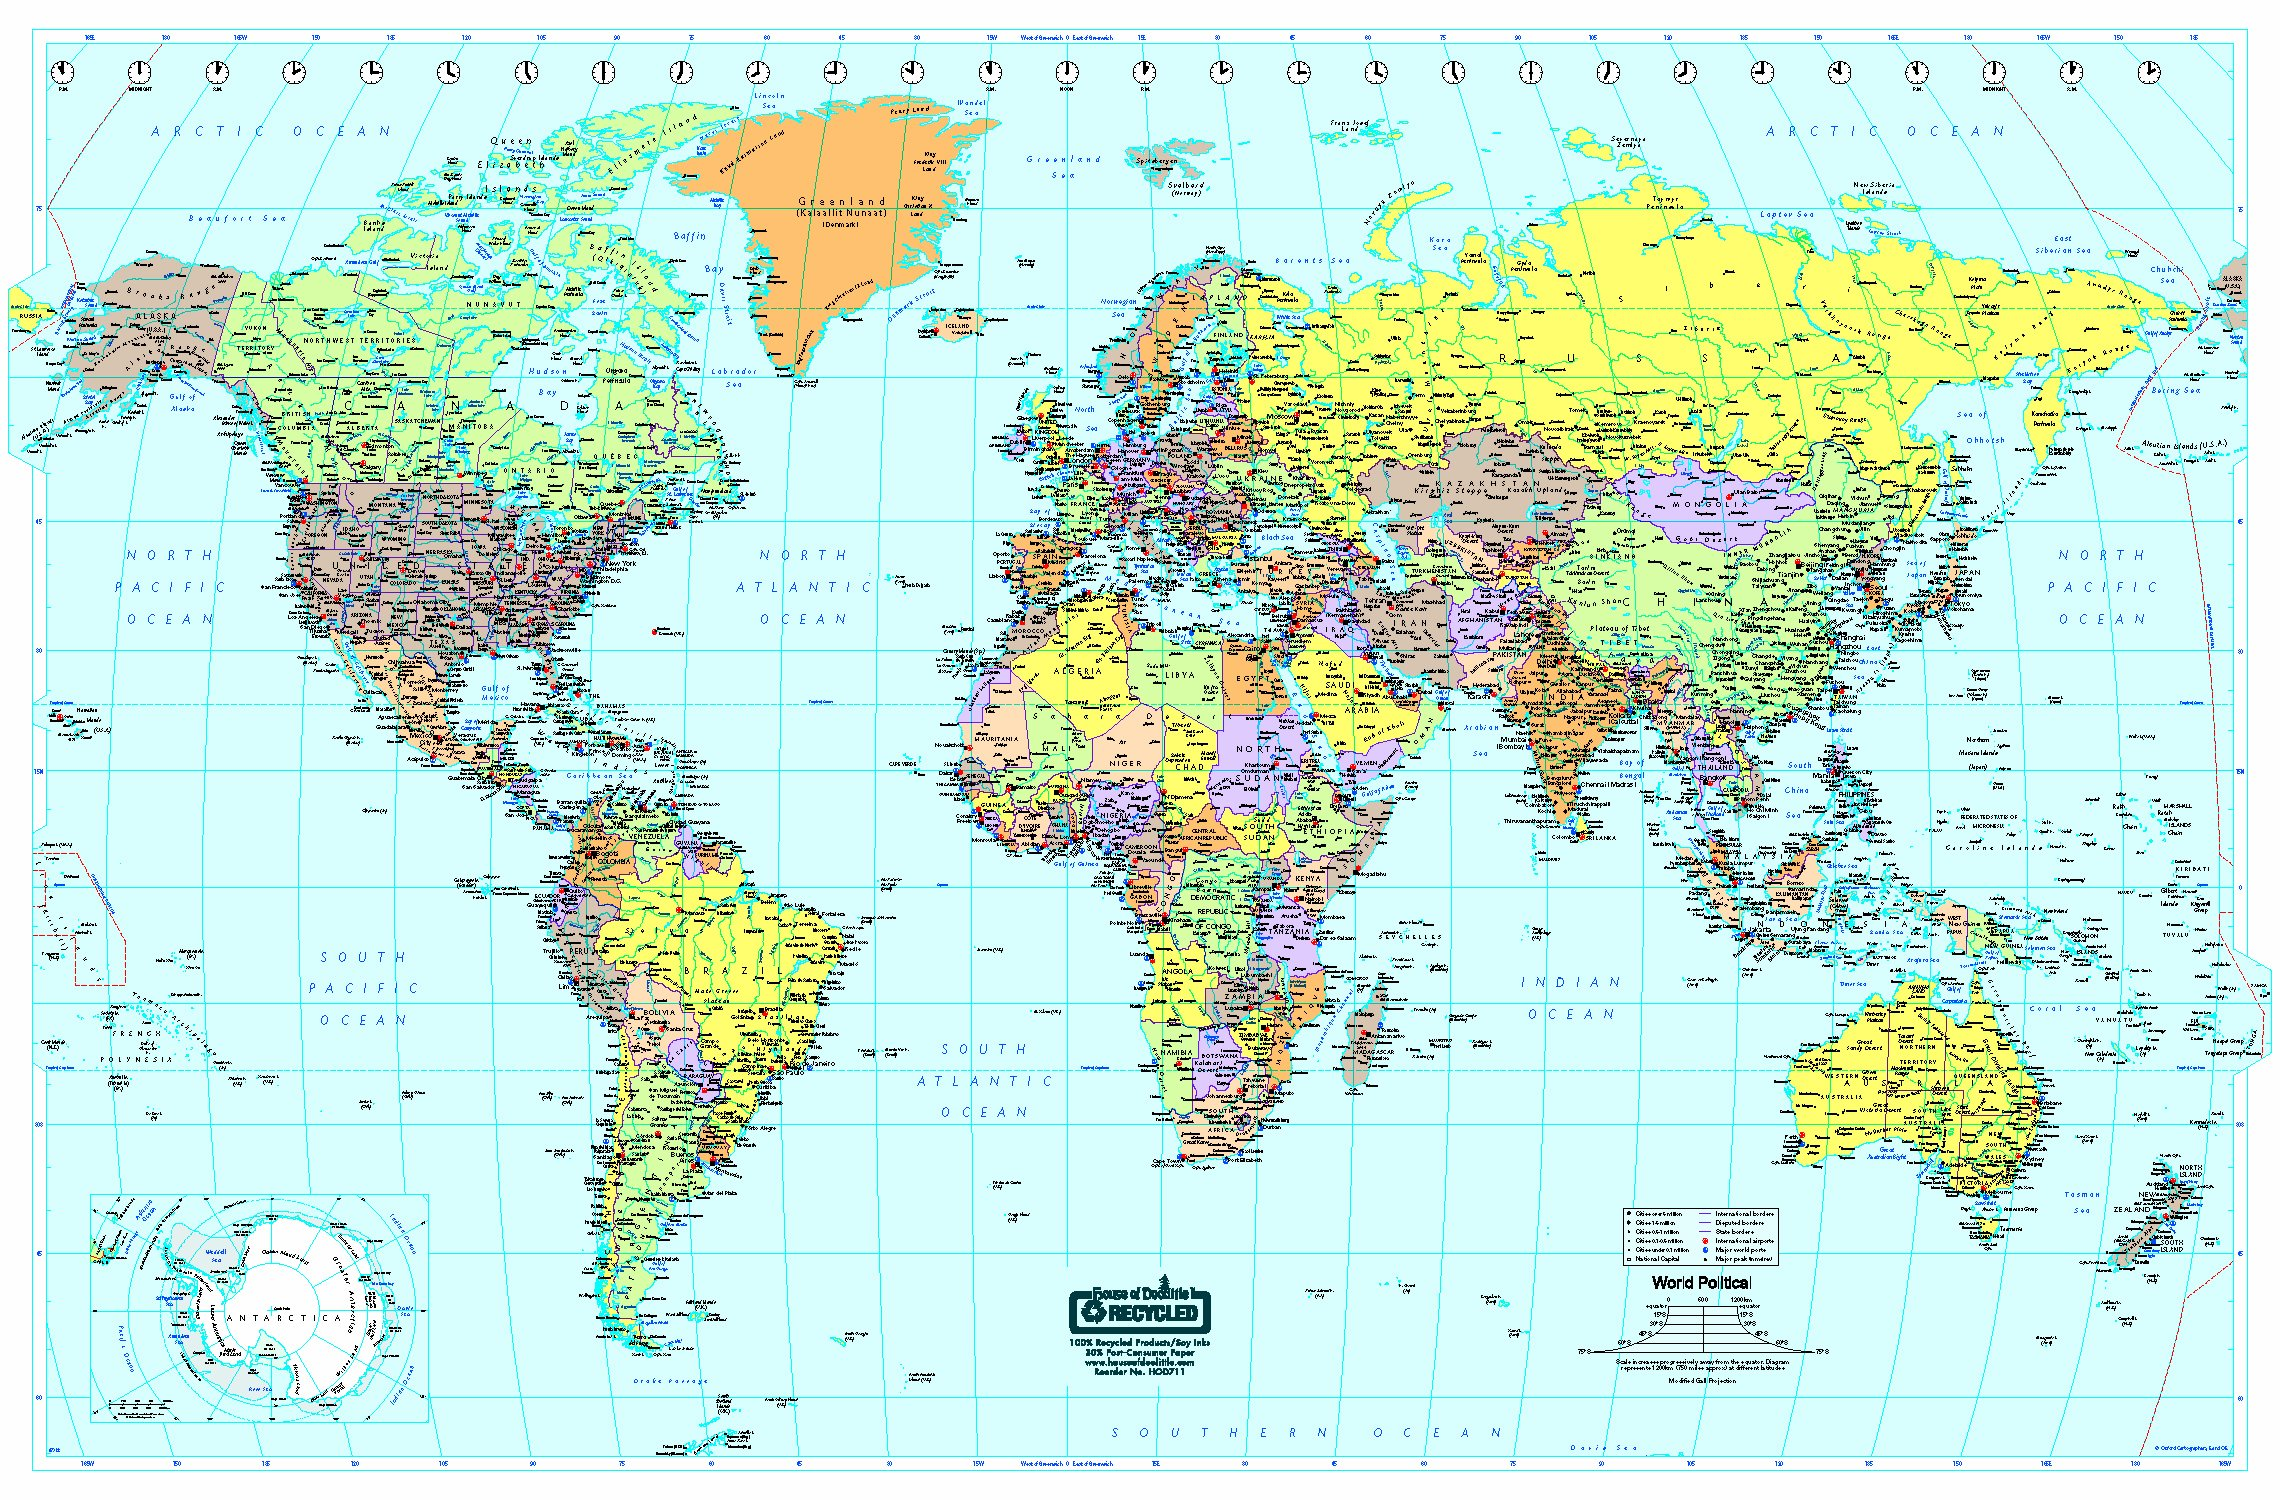 World map boltss 28 images pride global logistics air freight world map boltss house of doolittle laminated world map 50 x 33 inch with write on gumiabroncs Gallery